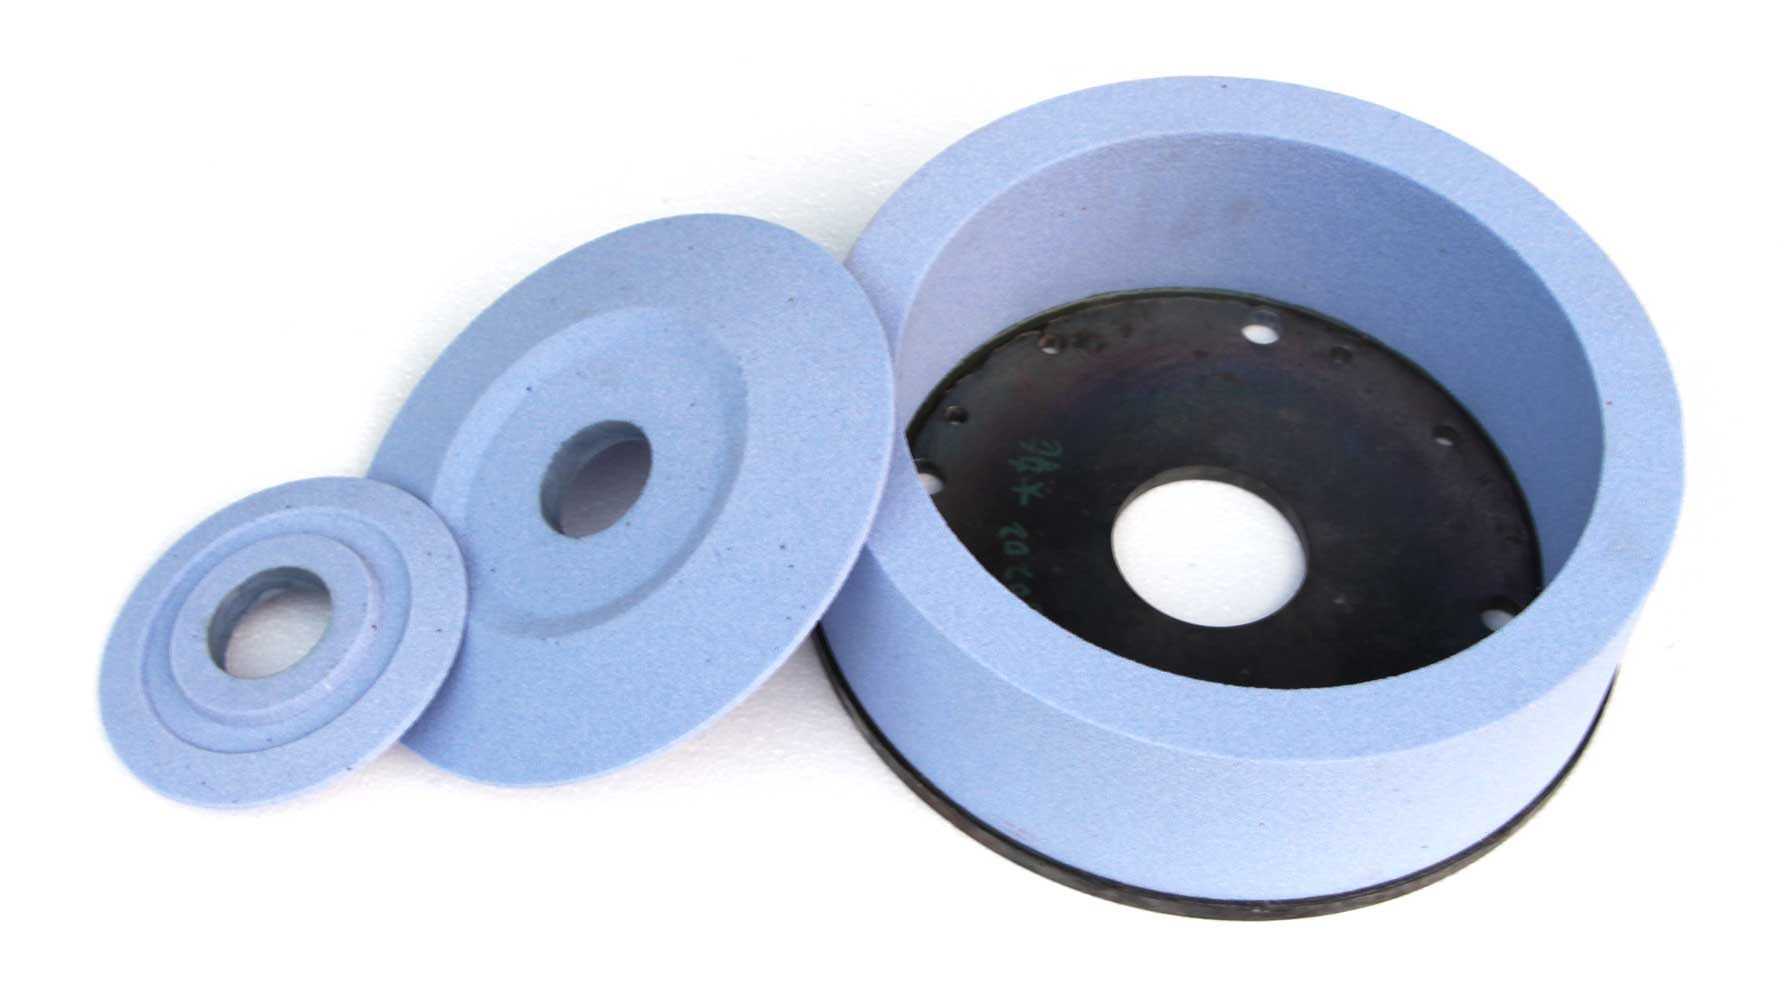 resin and ceramic grinding wheel